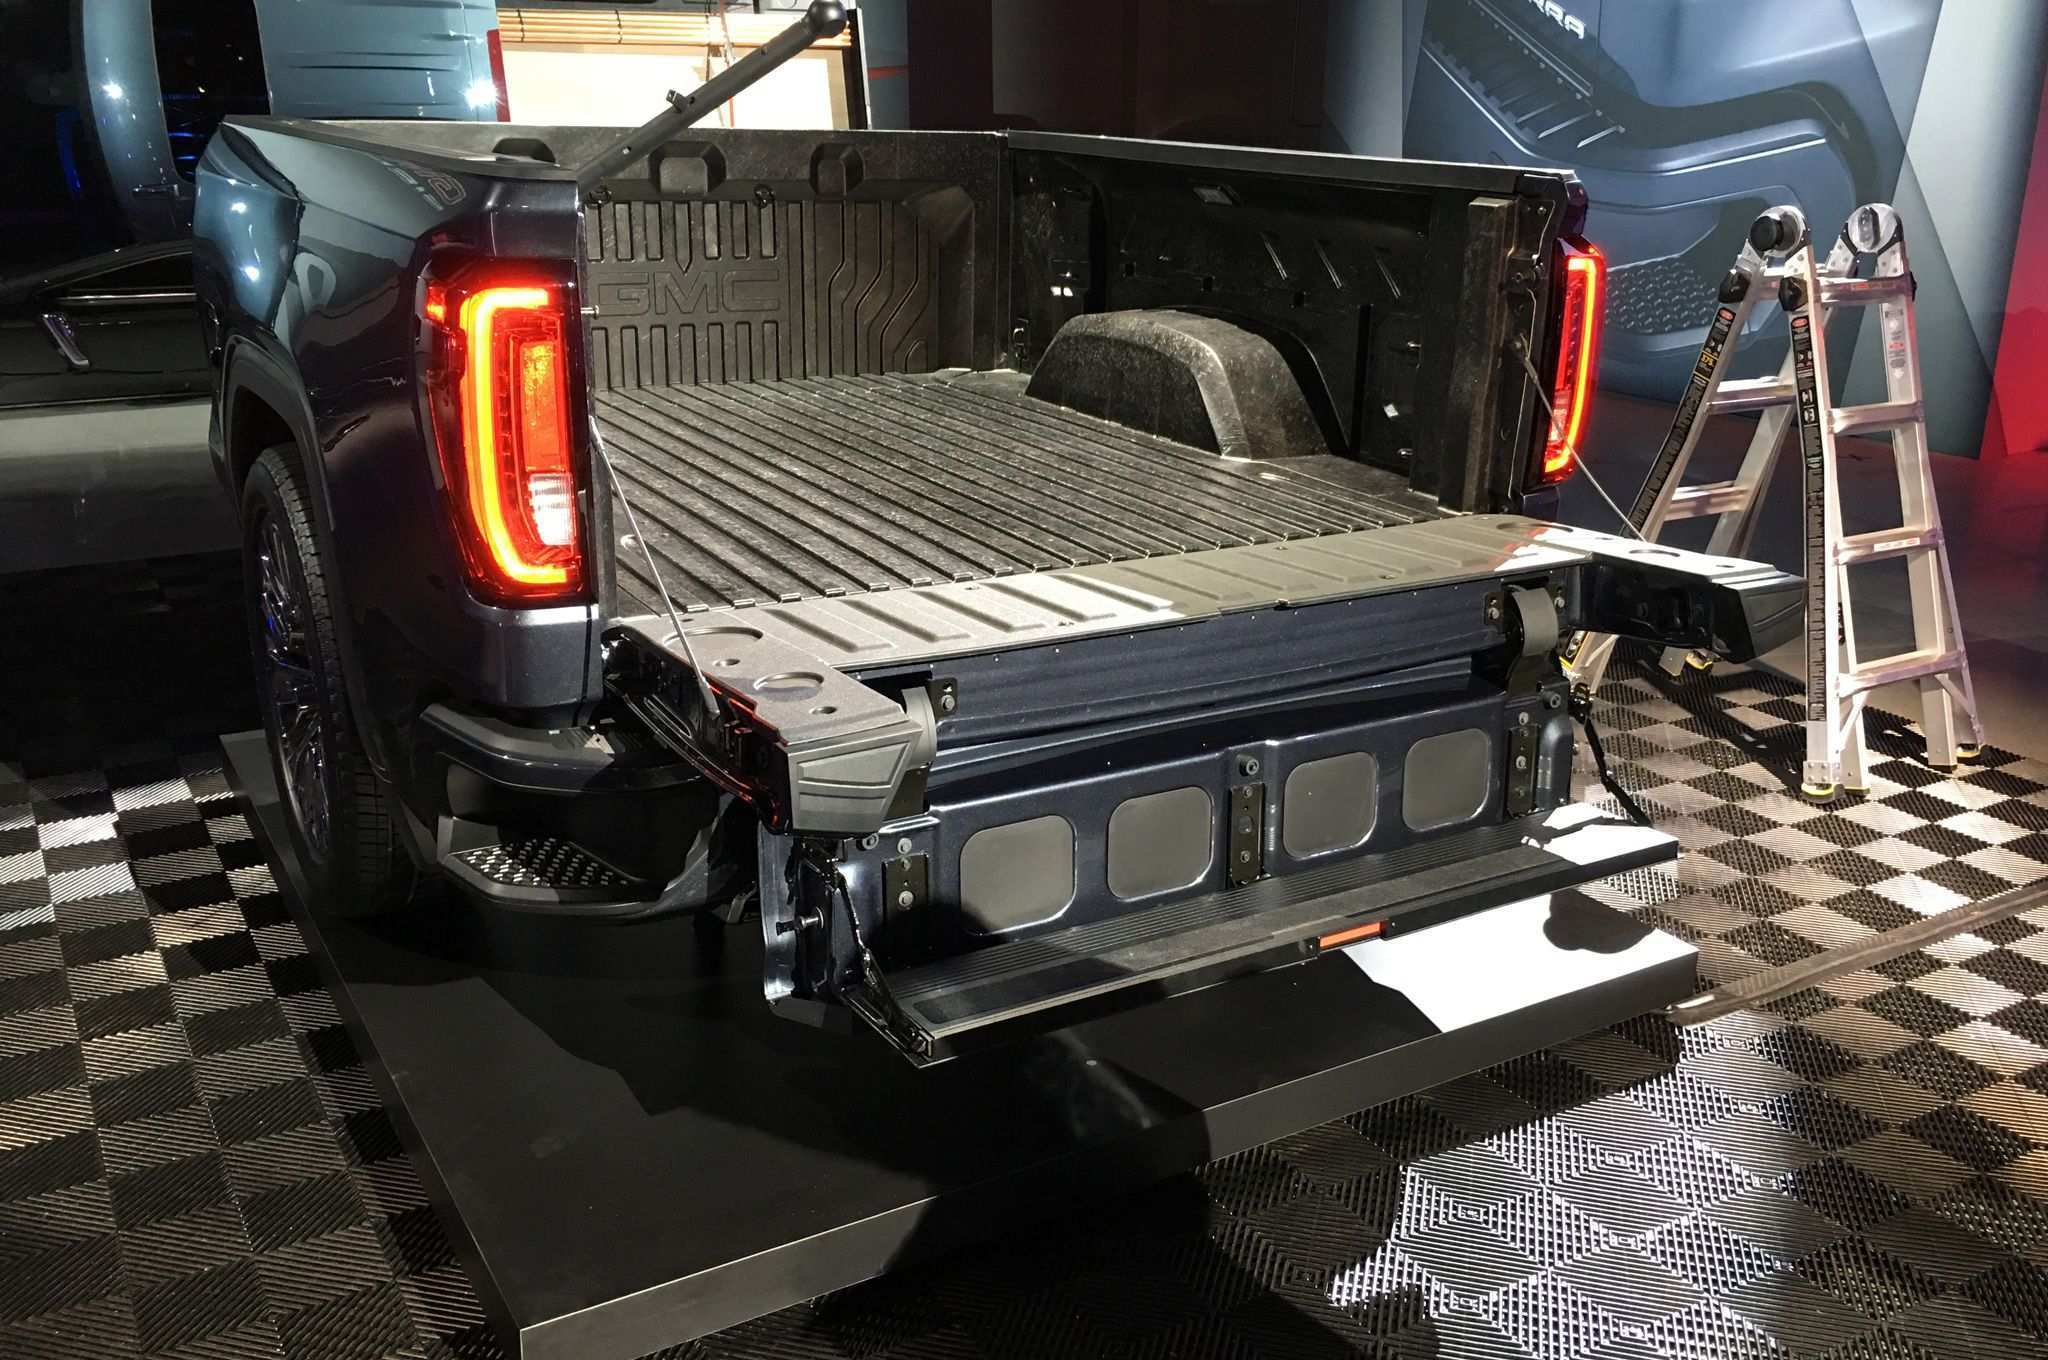 81 Concept of 2019 Gmc 2500 Tailgate Pictures by 2019 Gmc 2500 Tailgate